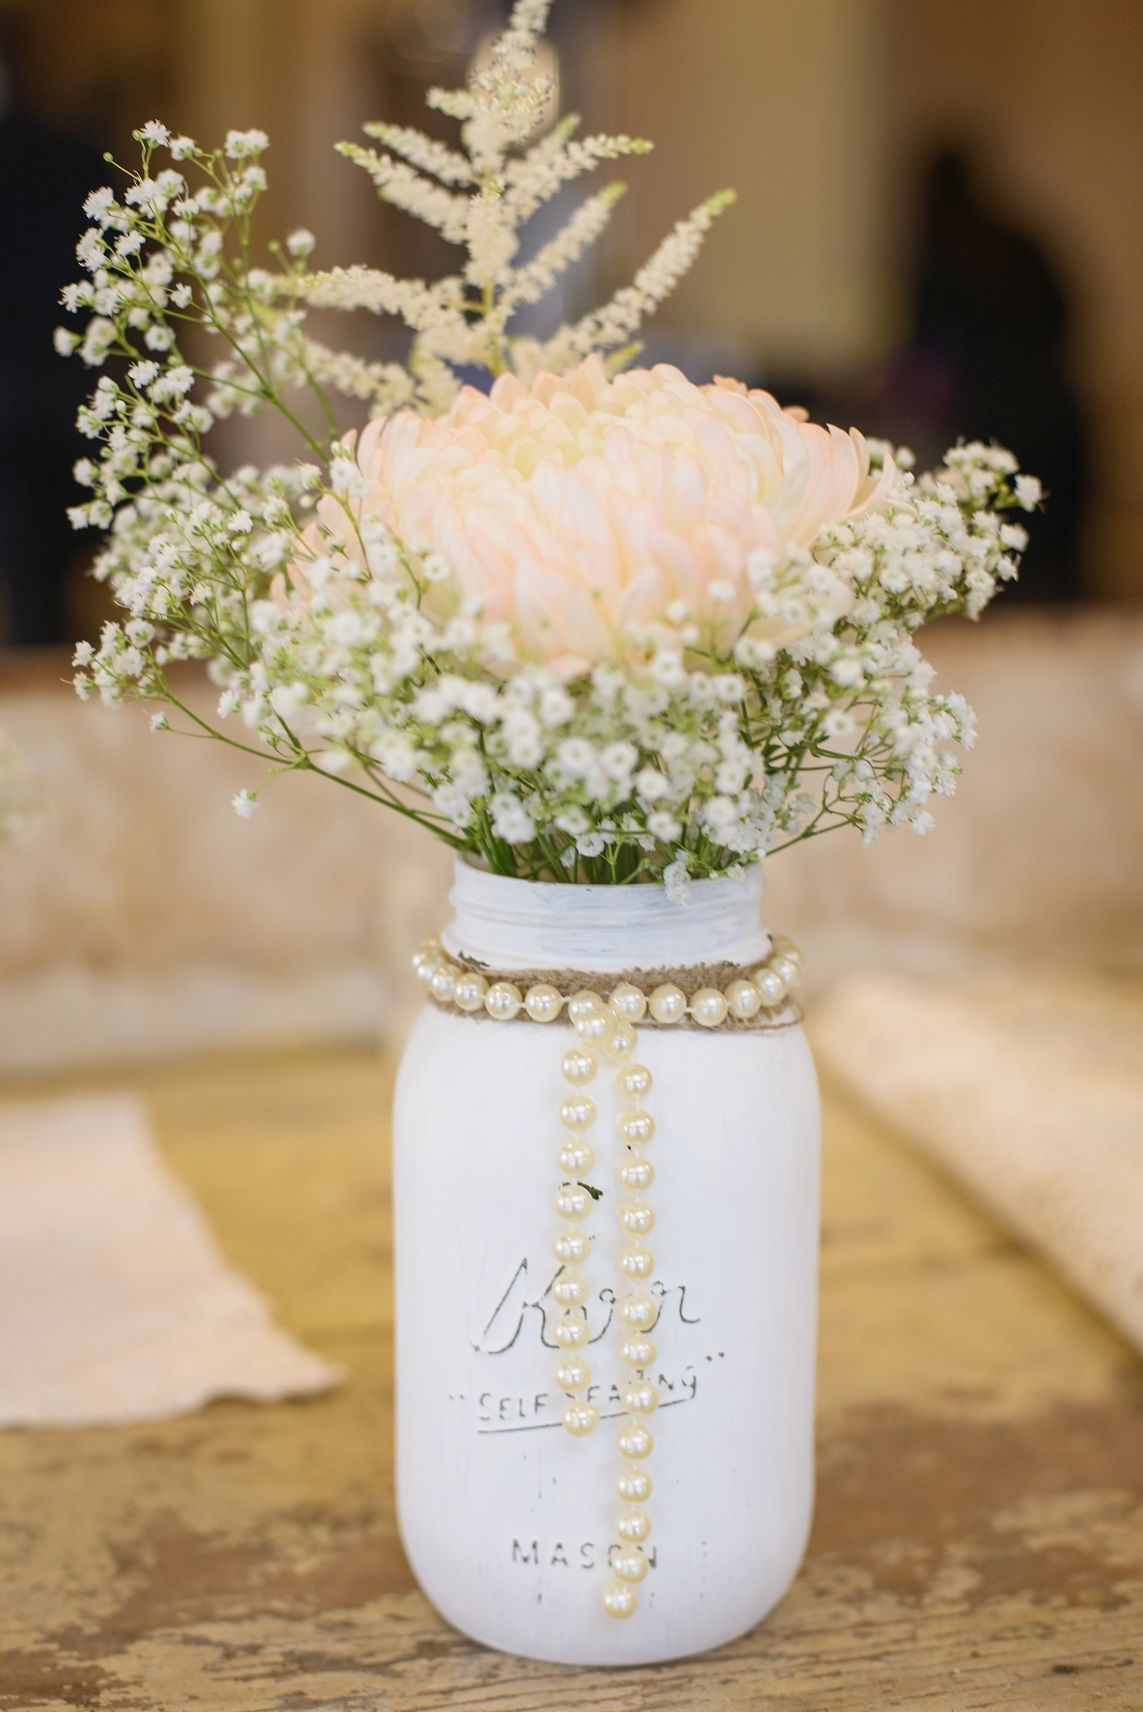 Mason Jar Decorations Part - 28: Centerpieces Donu0027t Have To Be Expensive! DIY Your Reception Centerpieces By  Painting Mason